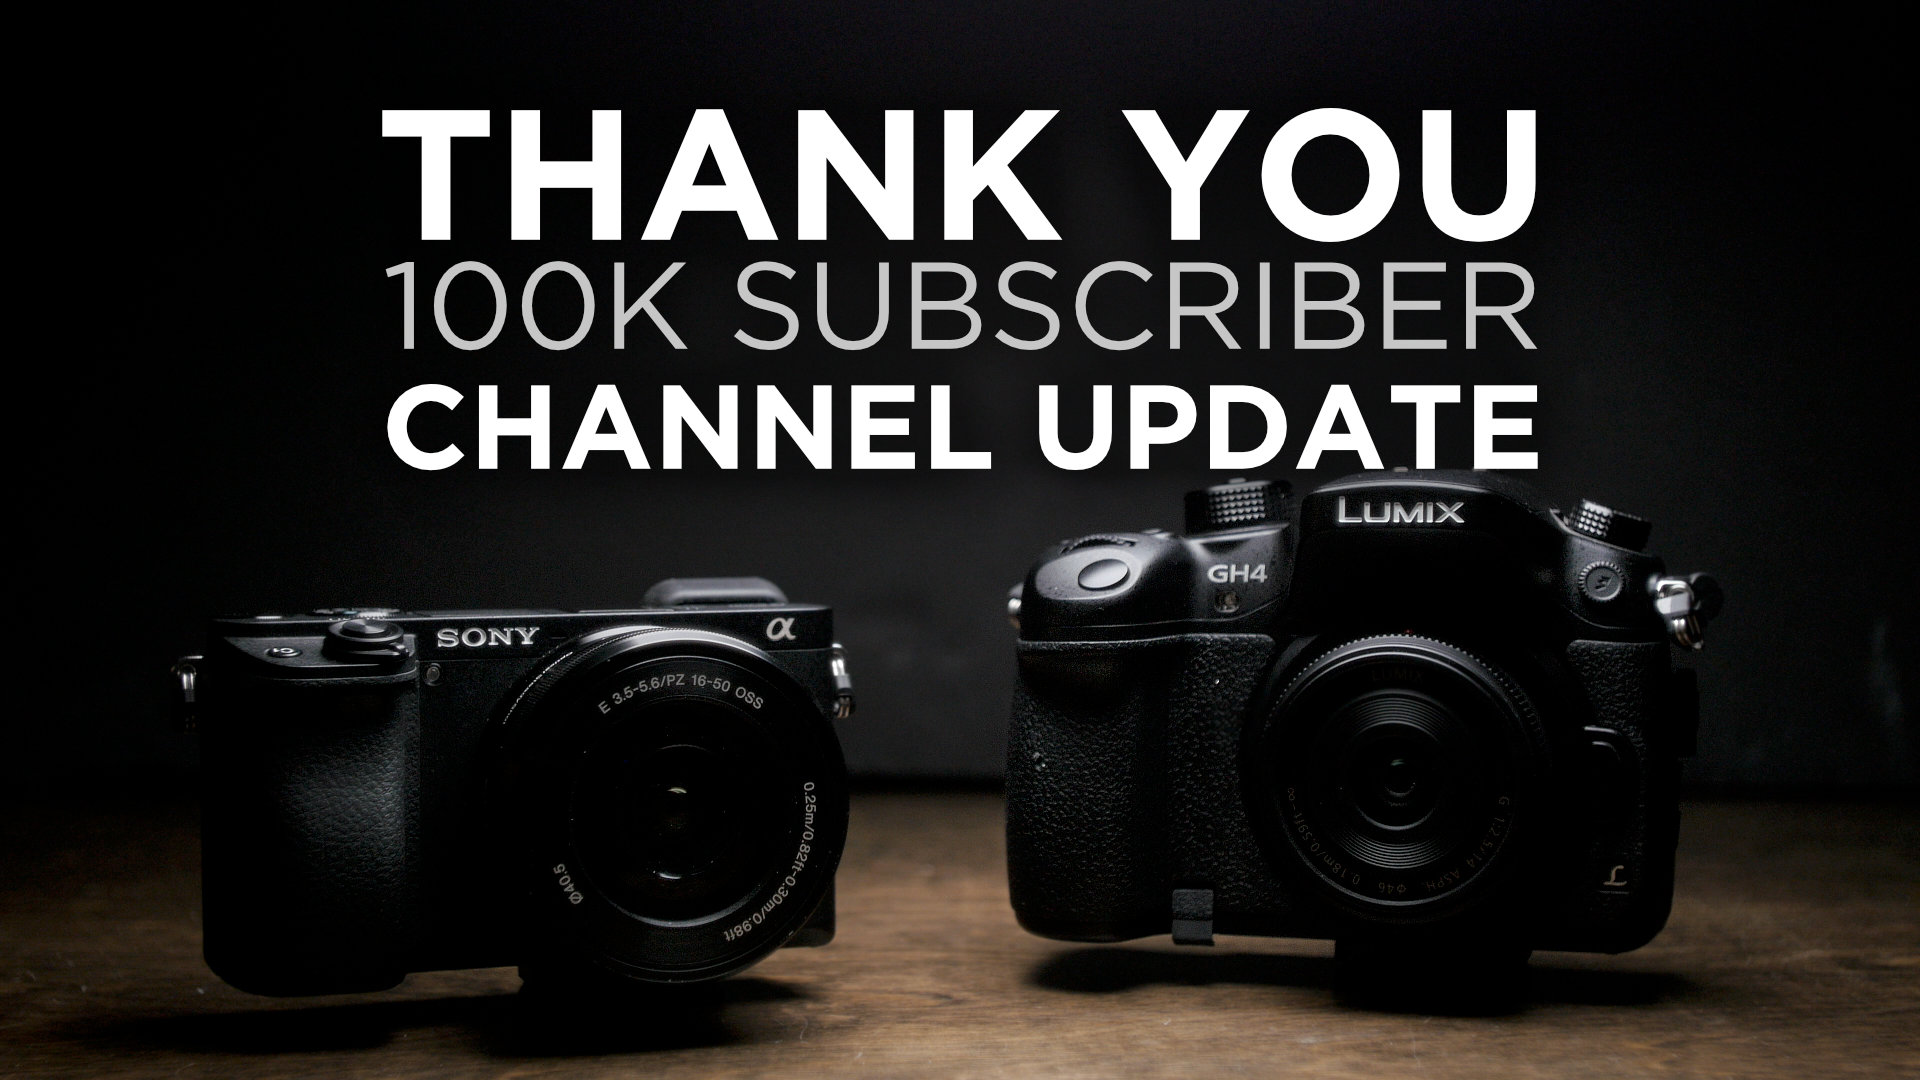 Channel Update: Thank You for 100K! What's Next?